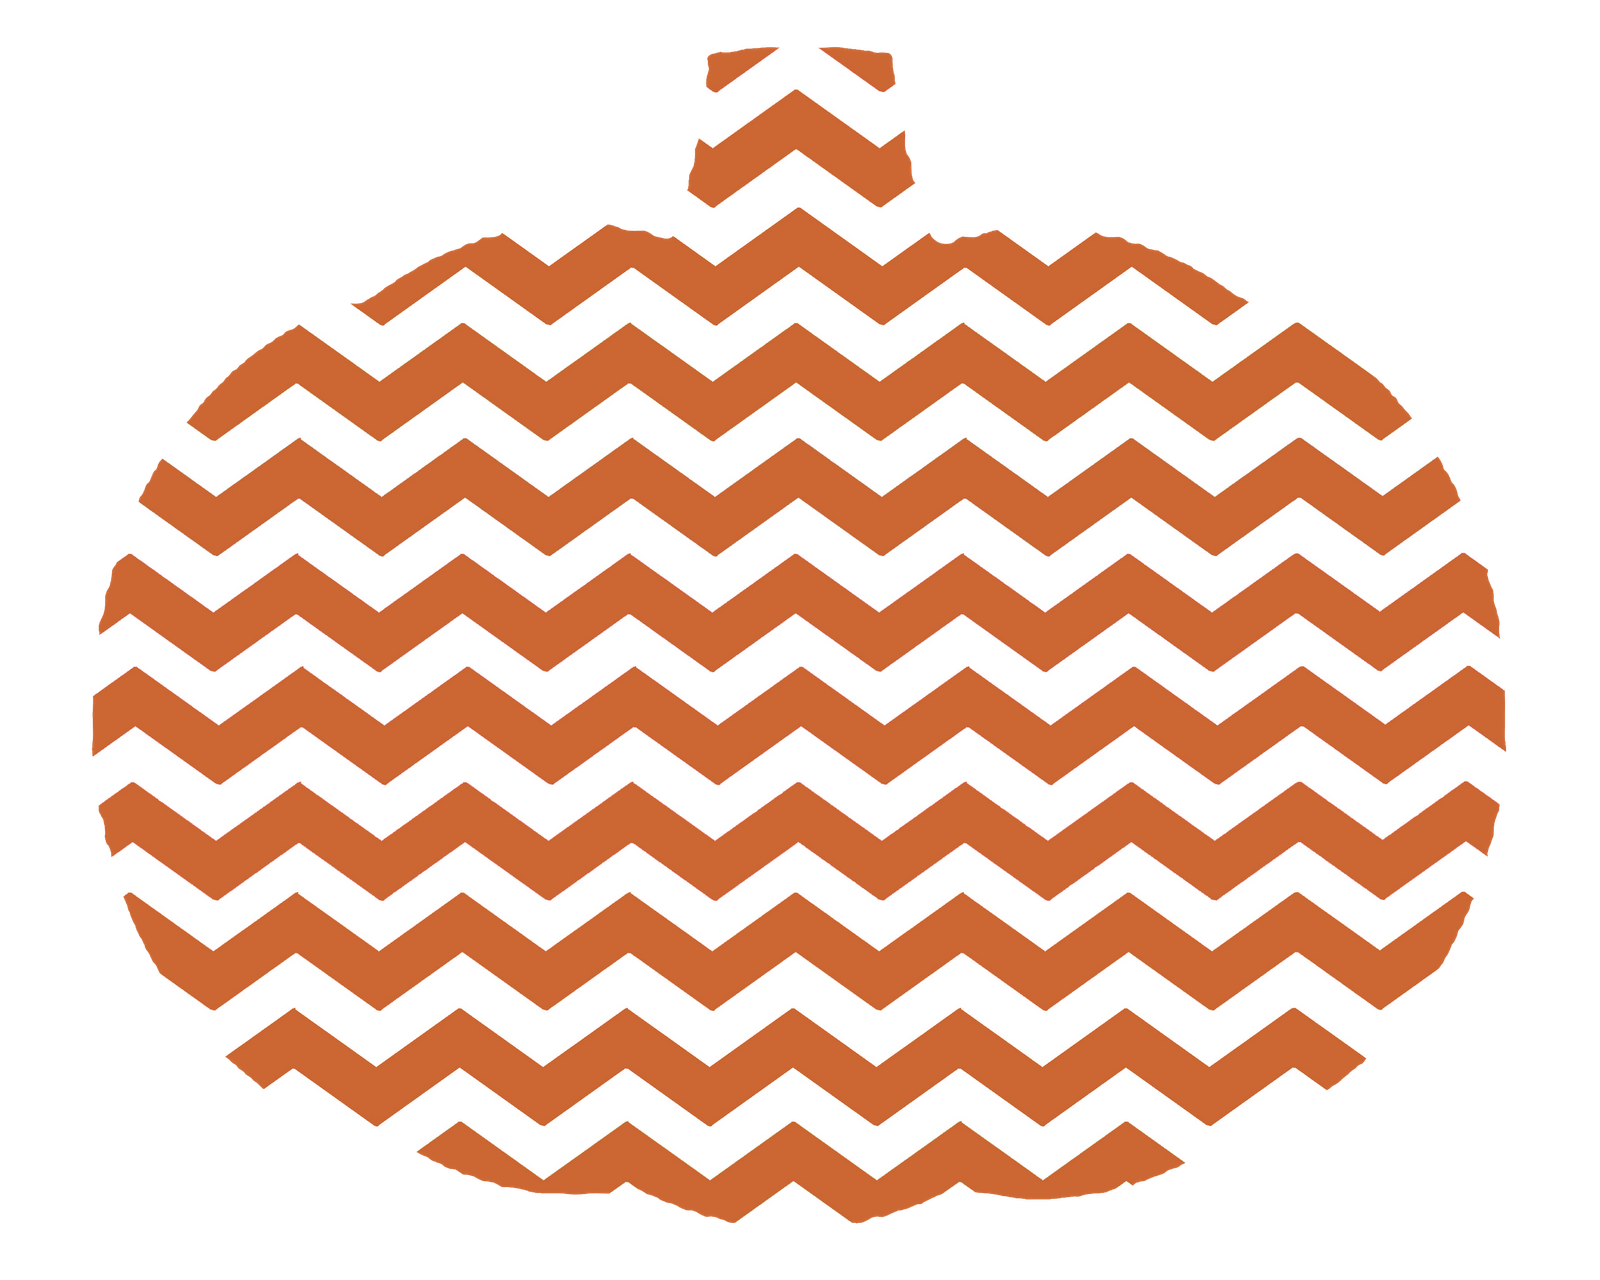 Stripy pumpkin clipart svg black and white download 28+ Collection of Chevron Pumpkin Clipart | High quality, free ... svg black and white download